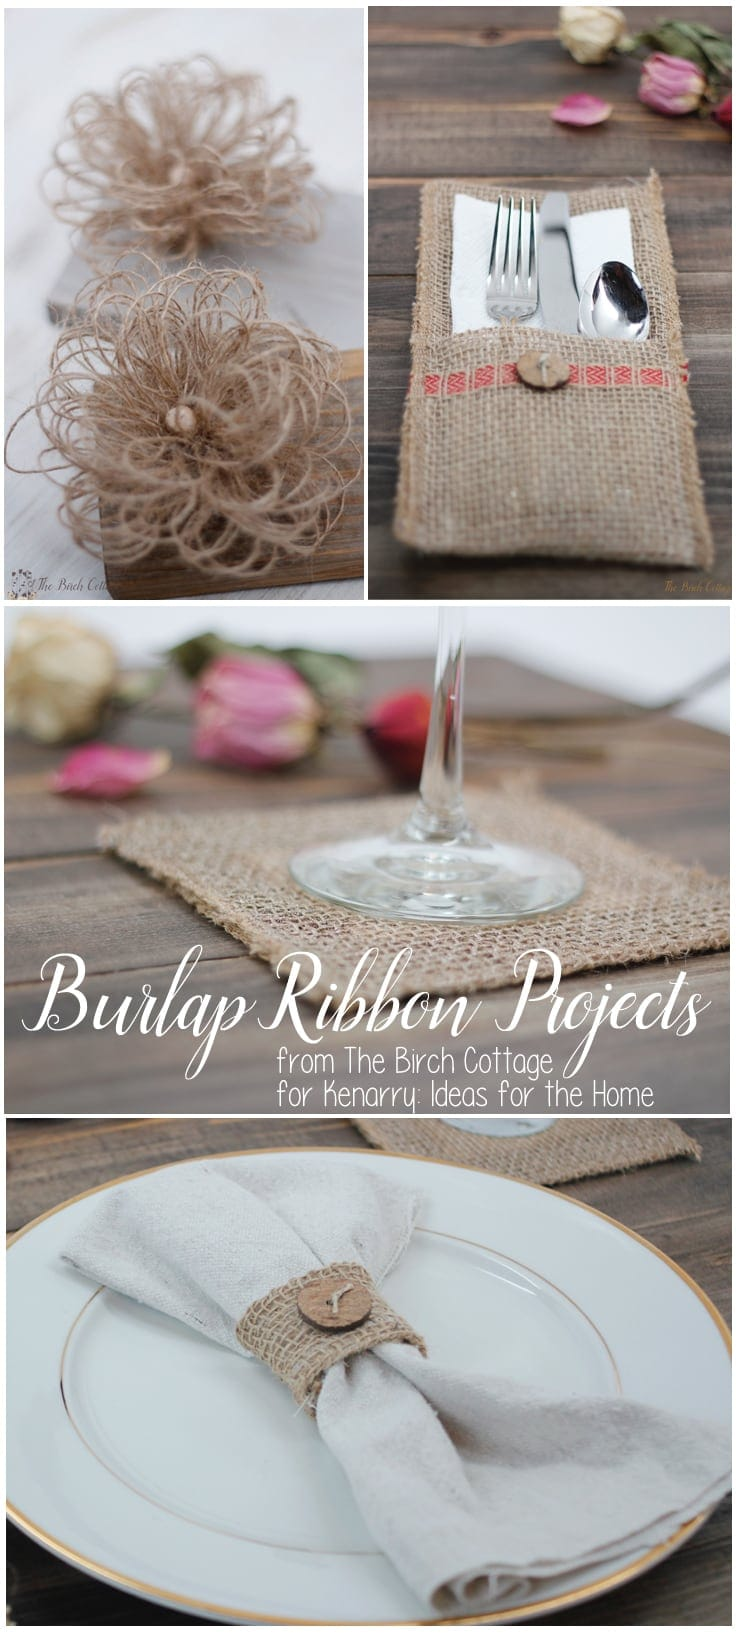 Four easy burlap ribbon projects from The Birch Cottage.